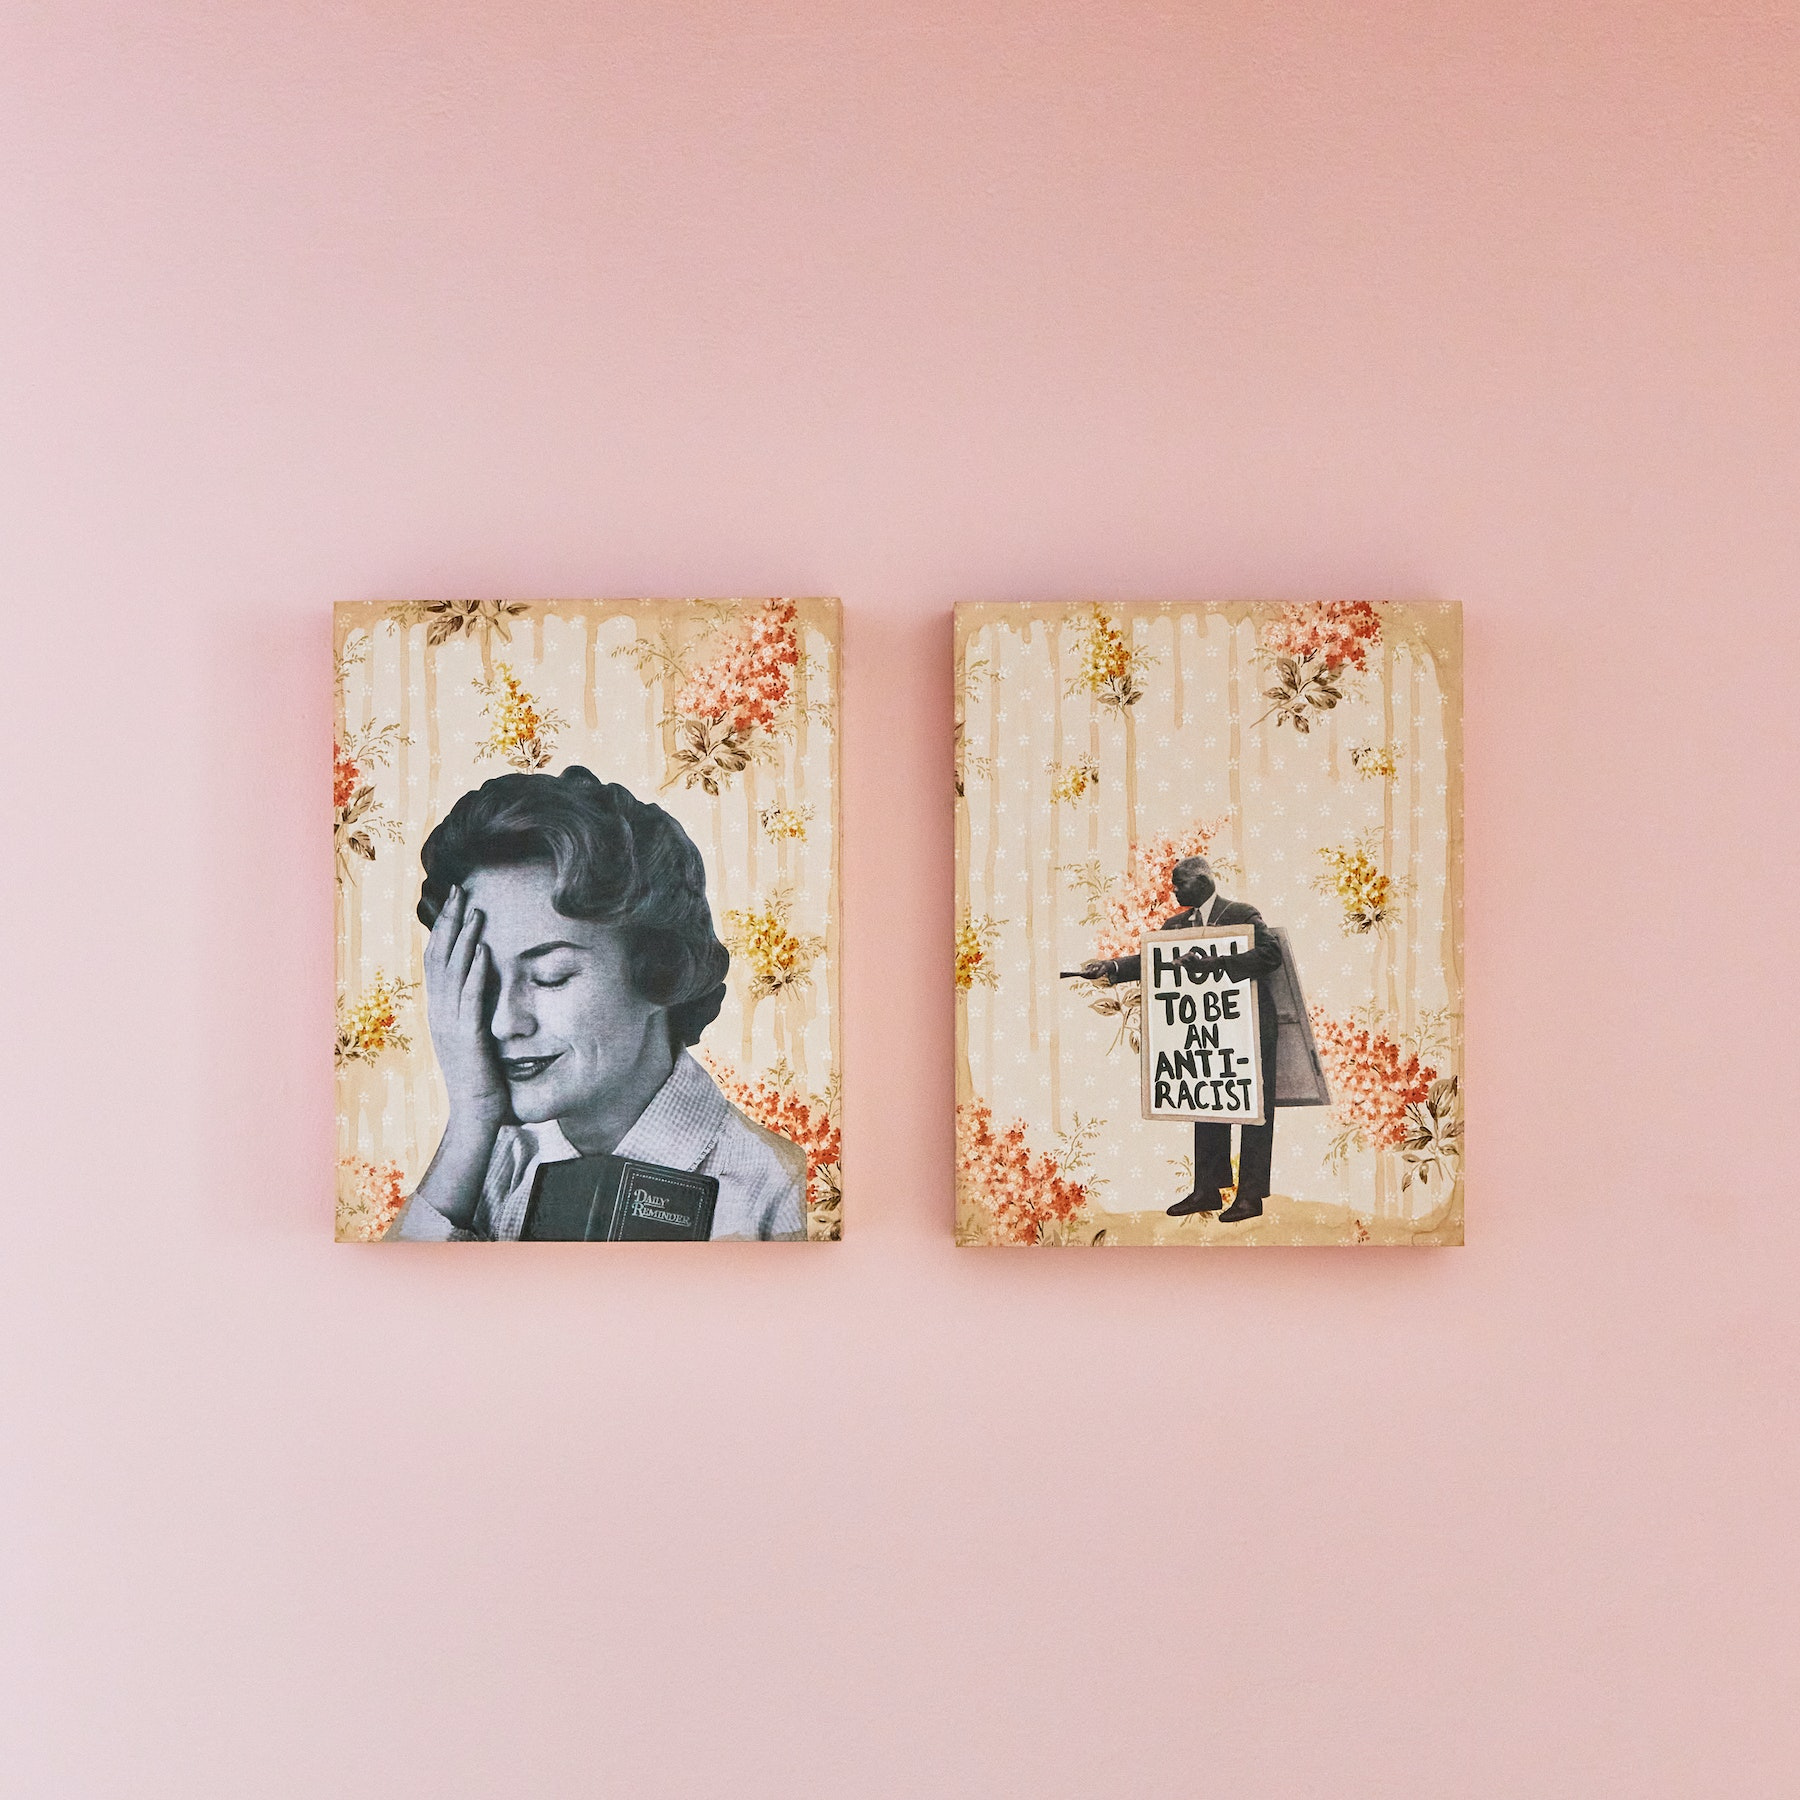 "Genevieve Gaignard ""Do The Work,"" 2020 Mixed media on panel Diptych 11 x 14 x 1.5"" [HxWxD] (27.94 x 35.56 x 3.81 cm) each Inventory #GEN327 Courtesy of the artist and Vielmetter Los Angeles Photo credit: Megan Haley"